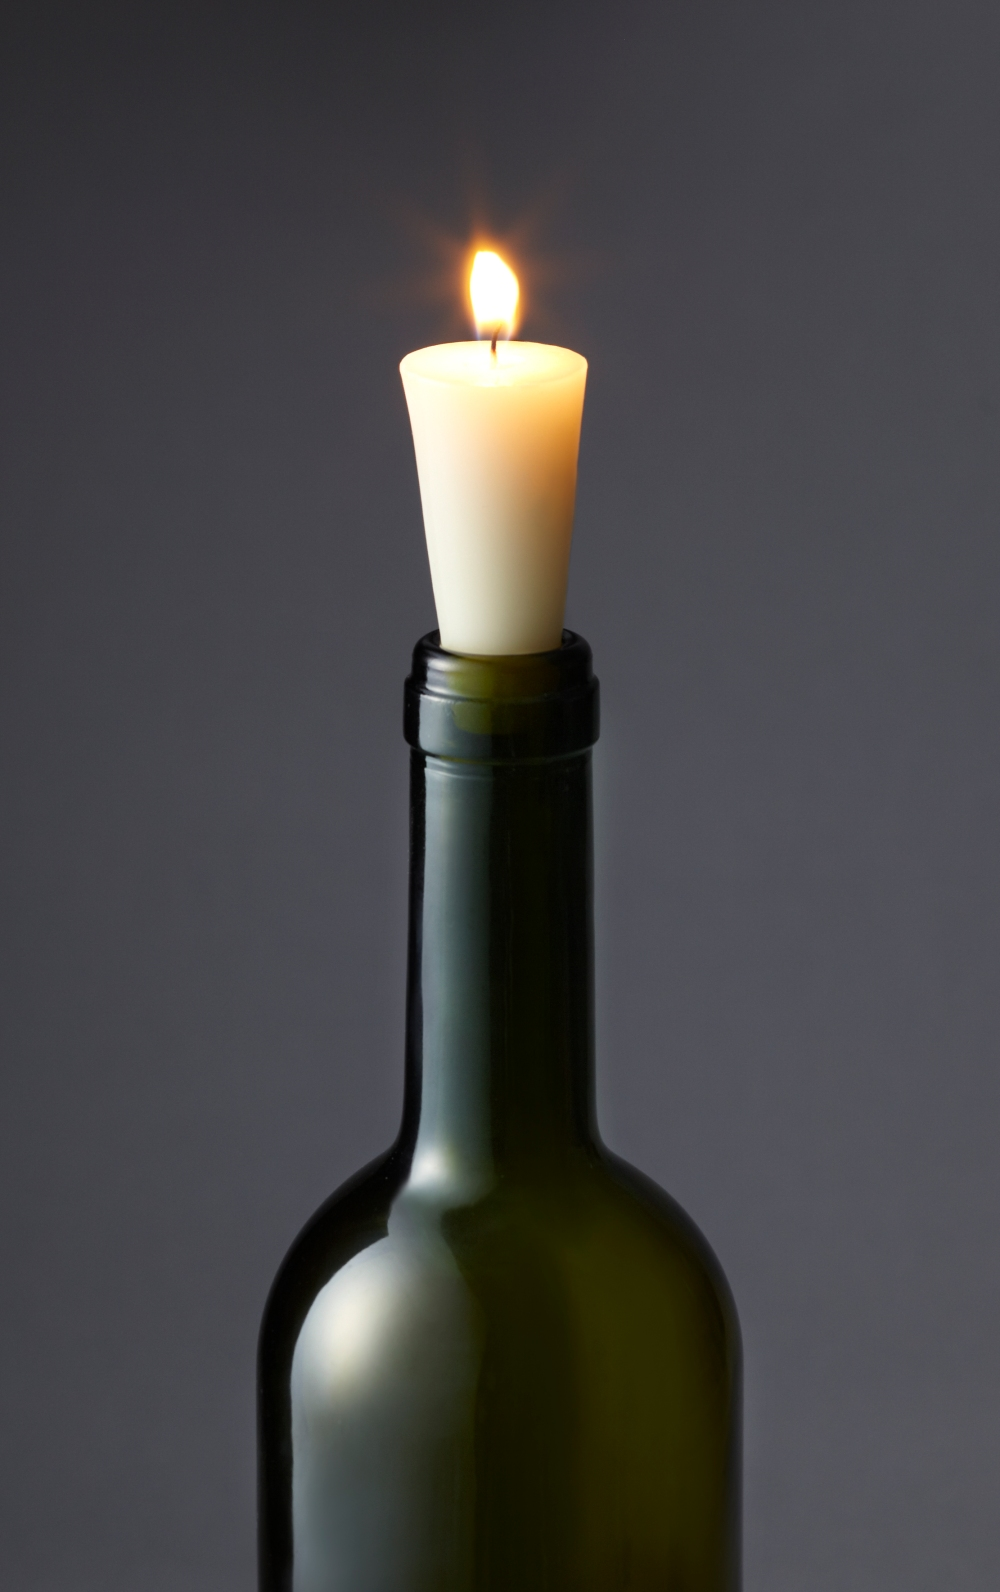 Bottle Stopper Wine Candle Lifestyle